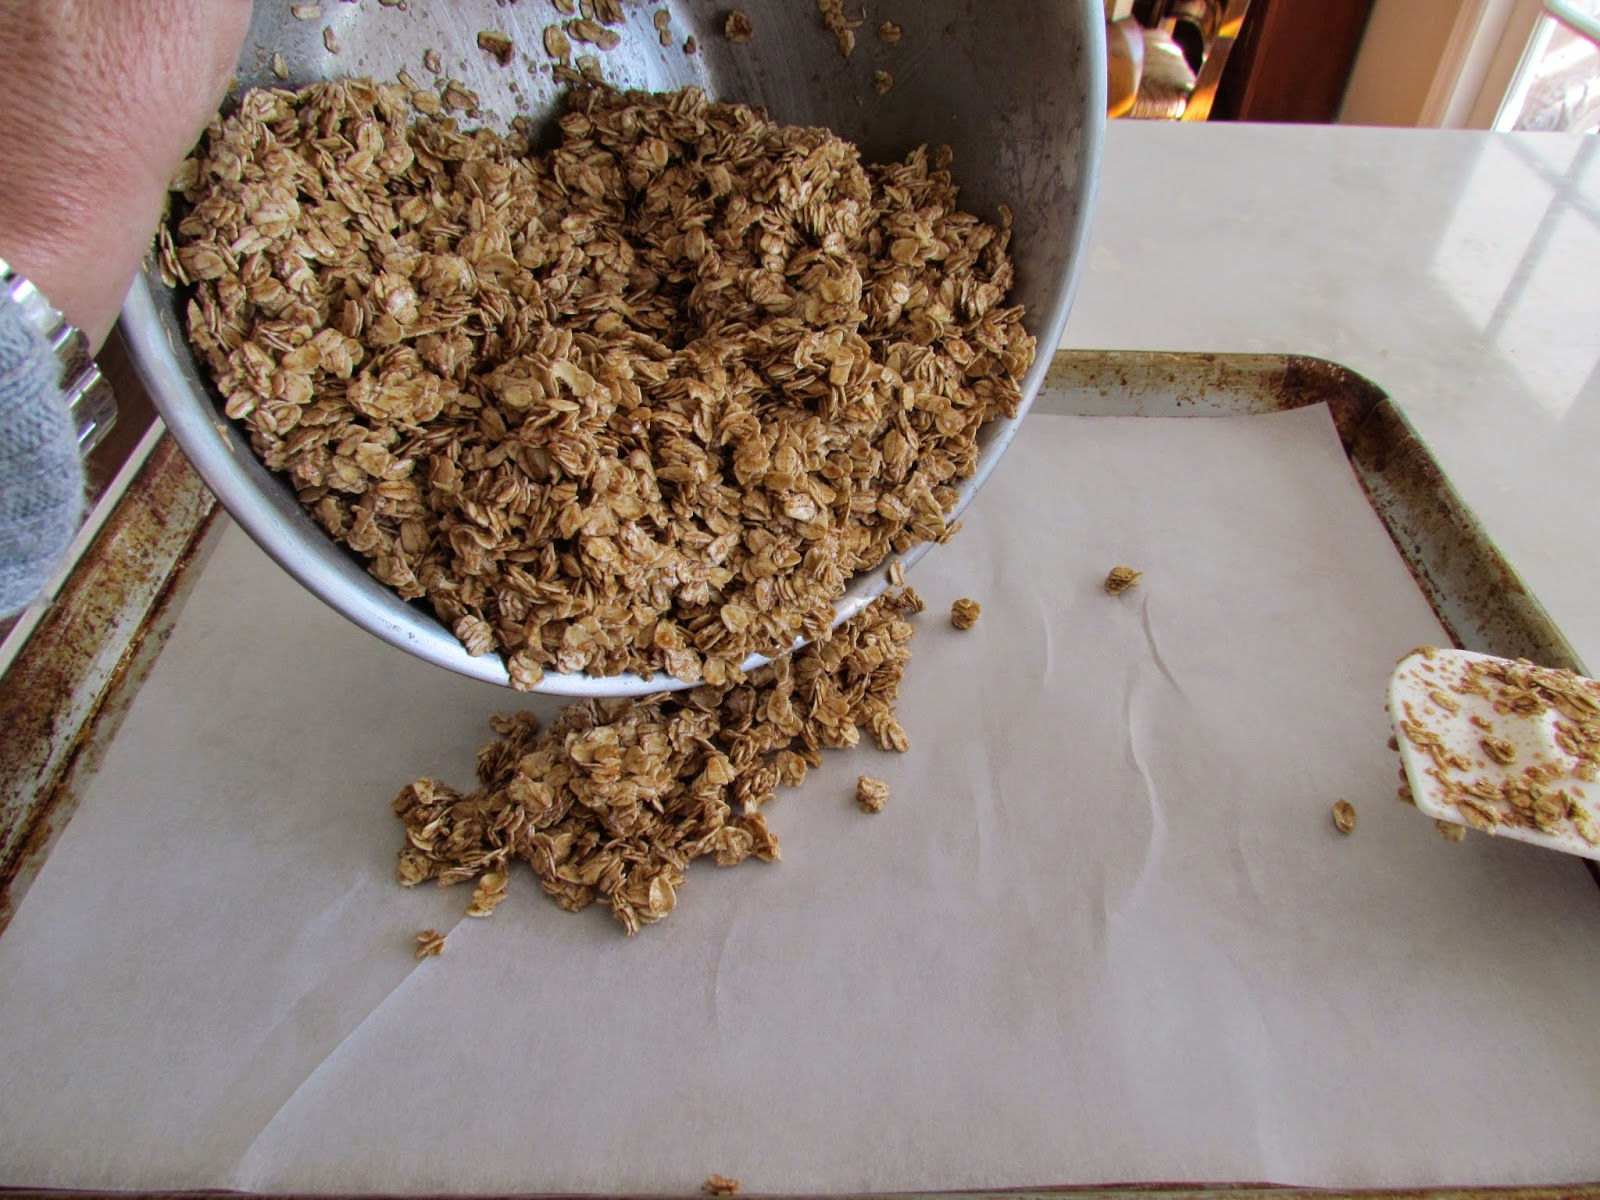 Pouring out the granola mix